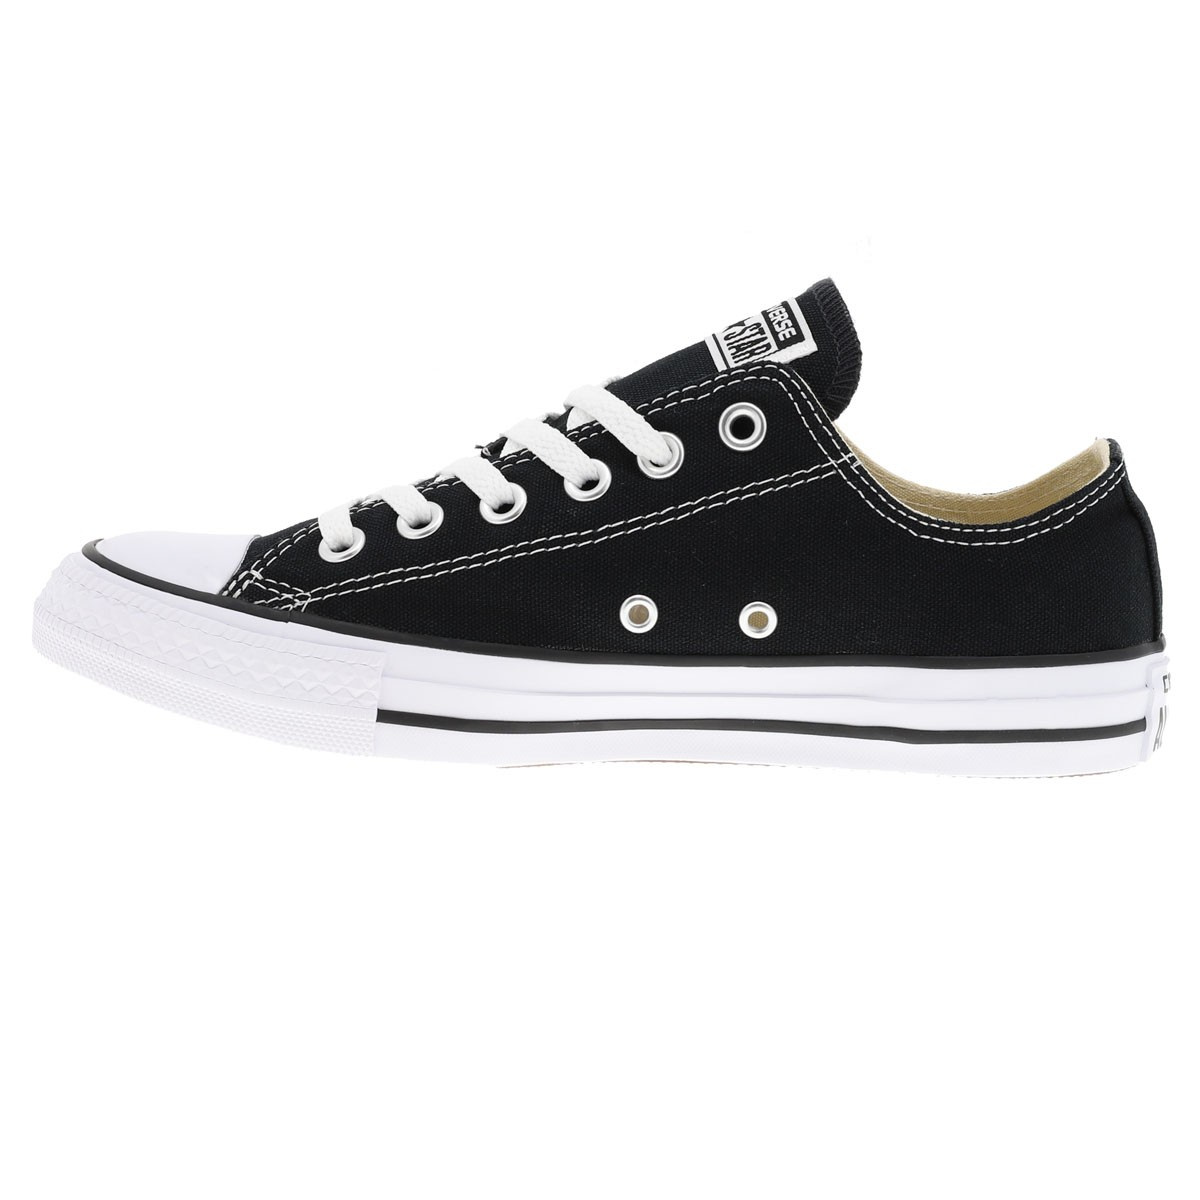 Noir Mixte Converse all star Chunk taylor basse basket The